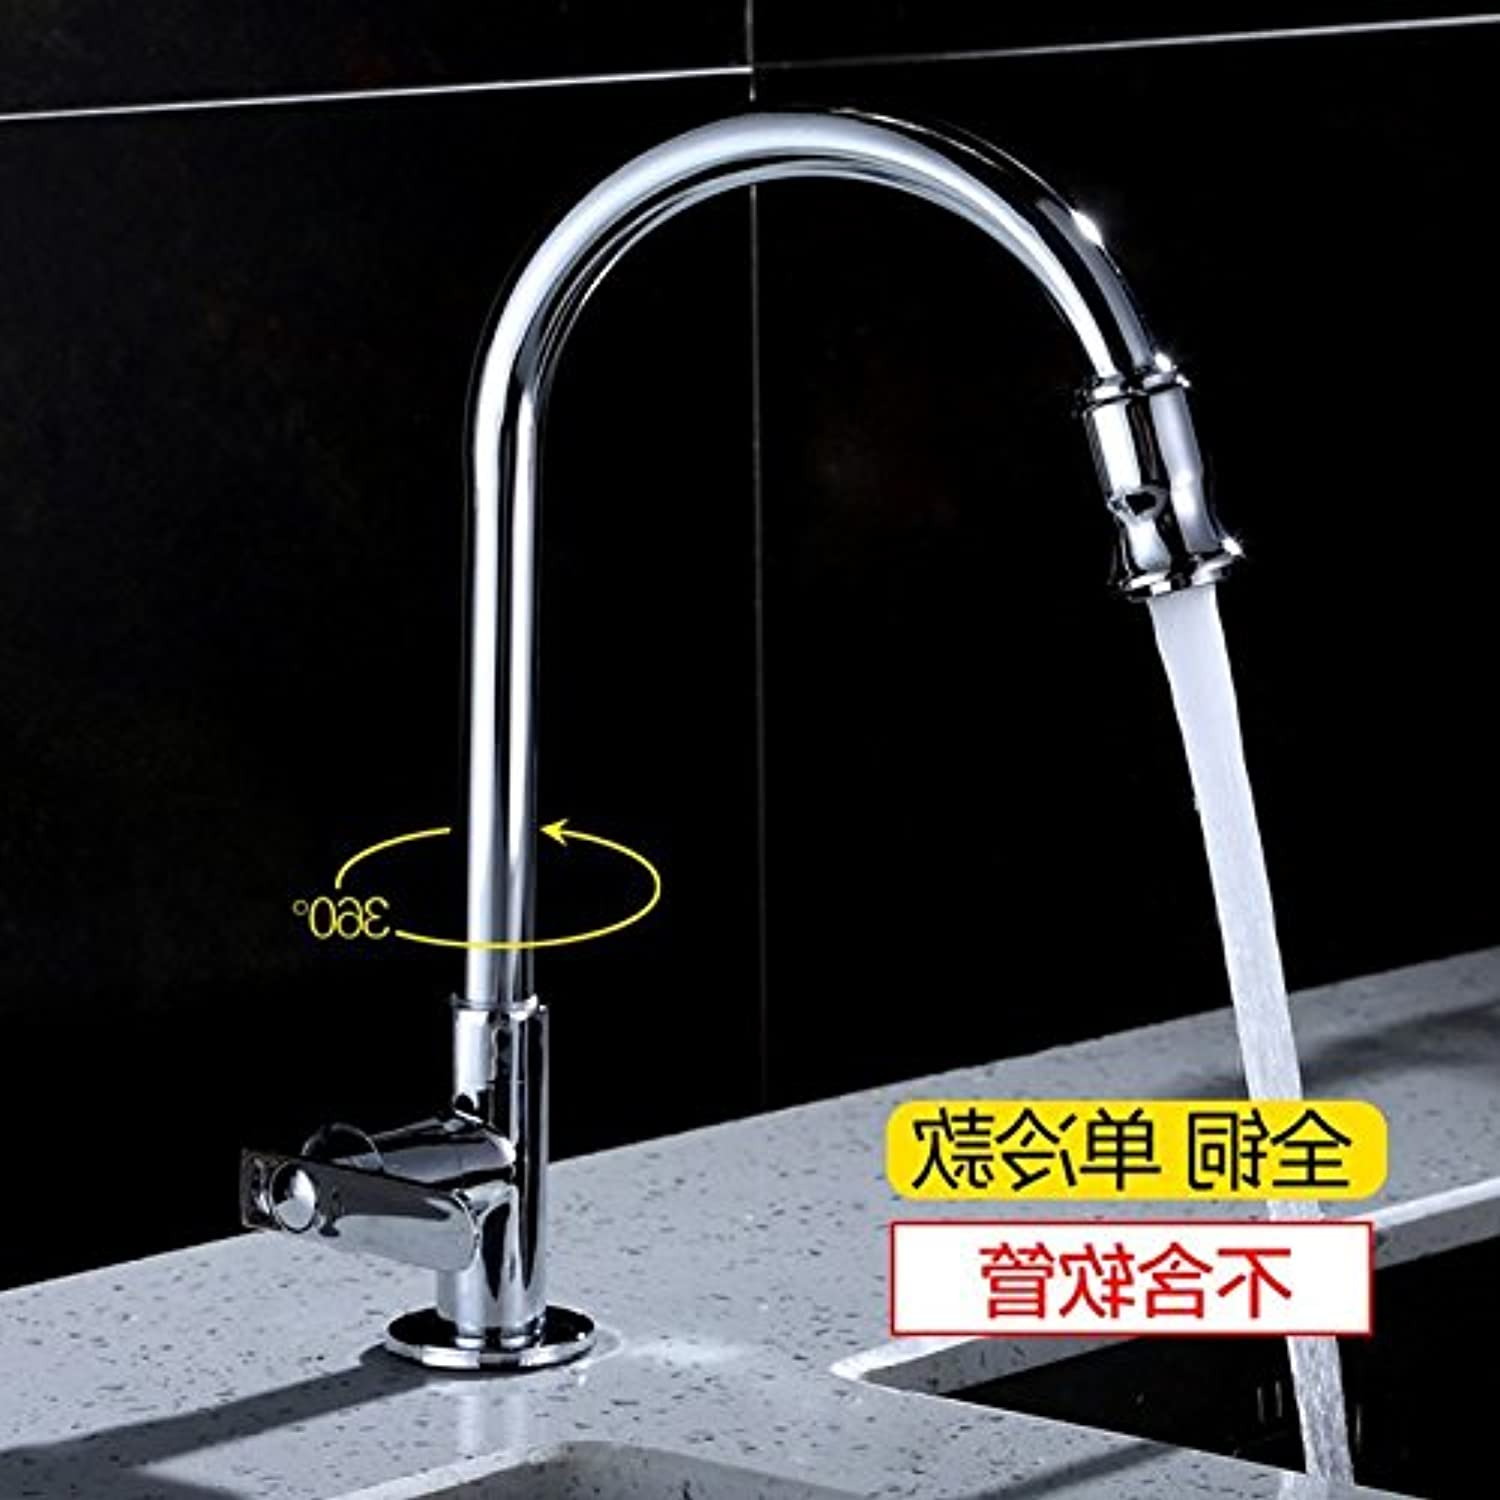 Gyps Faucet Single-Lever Washbasin Mixer Tap Bathroom Fittings Brass Basin with Warm and Cold The Only One Who Wash in Cold Water Brushed Kitchen Tap